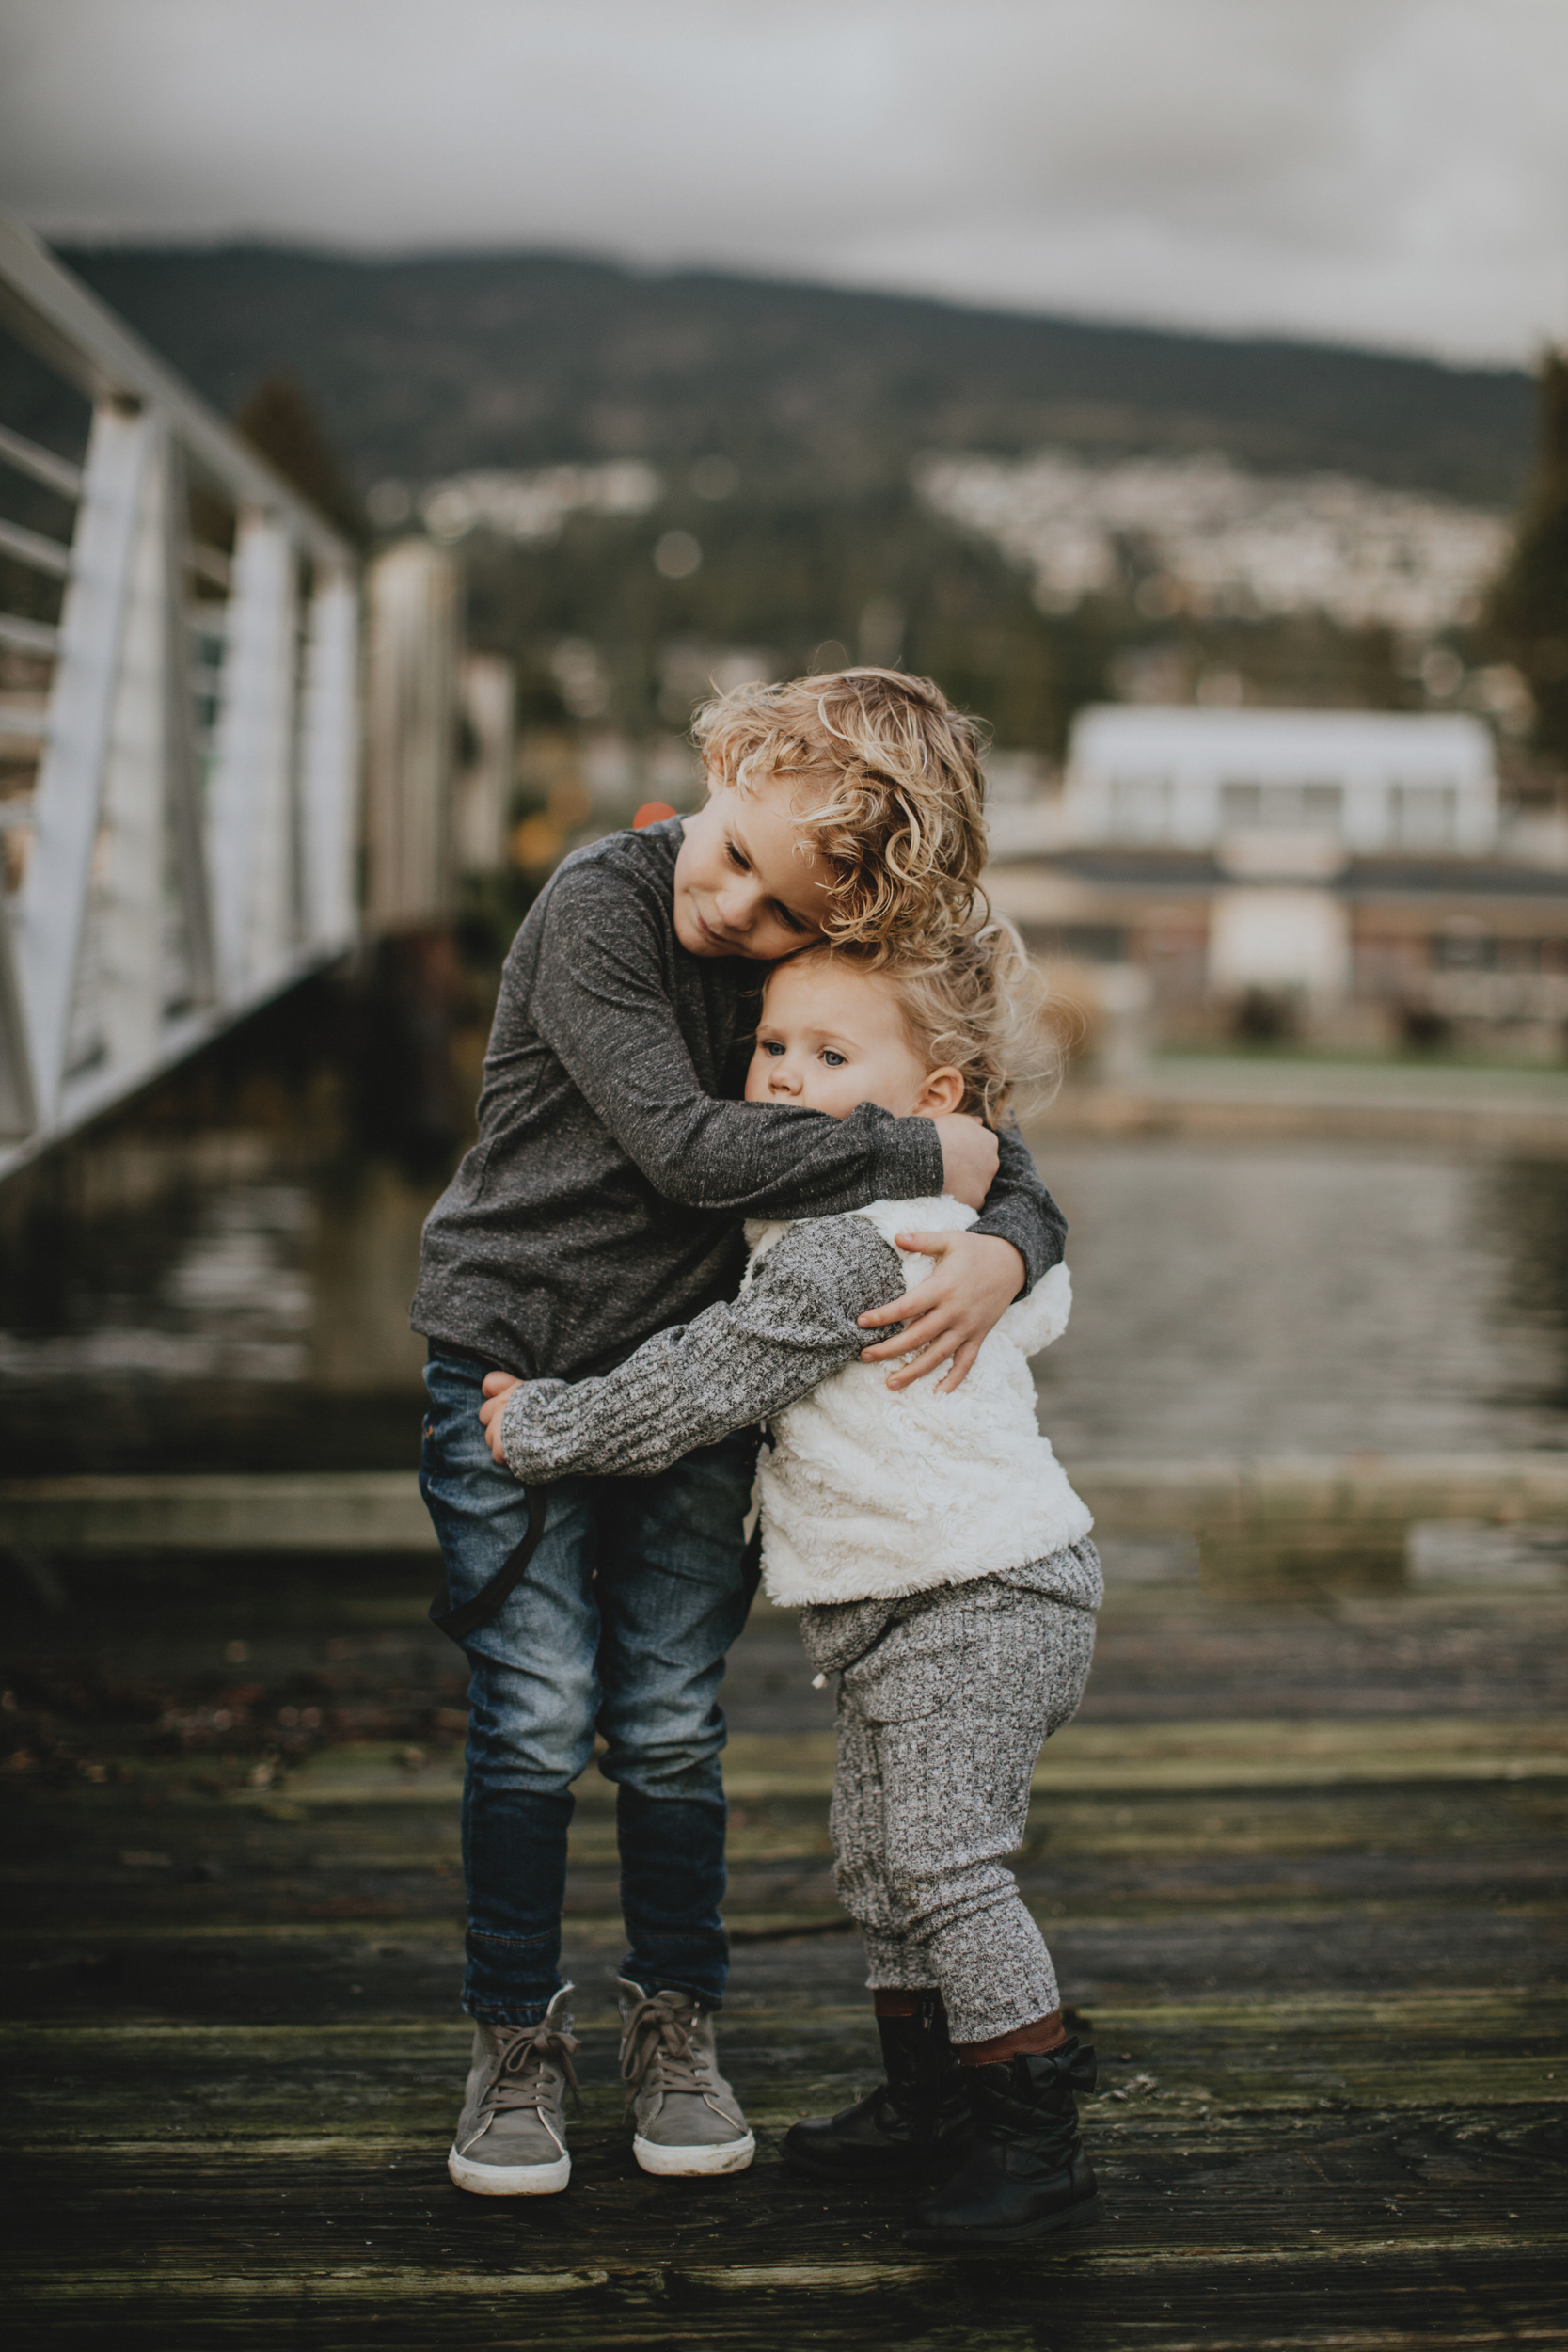 Dunderave-Pier-Family-Photos-Vancouver-3.jpg